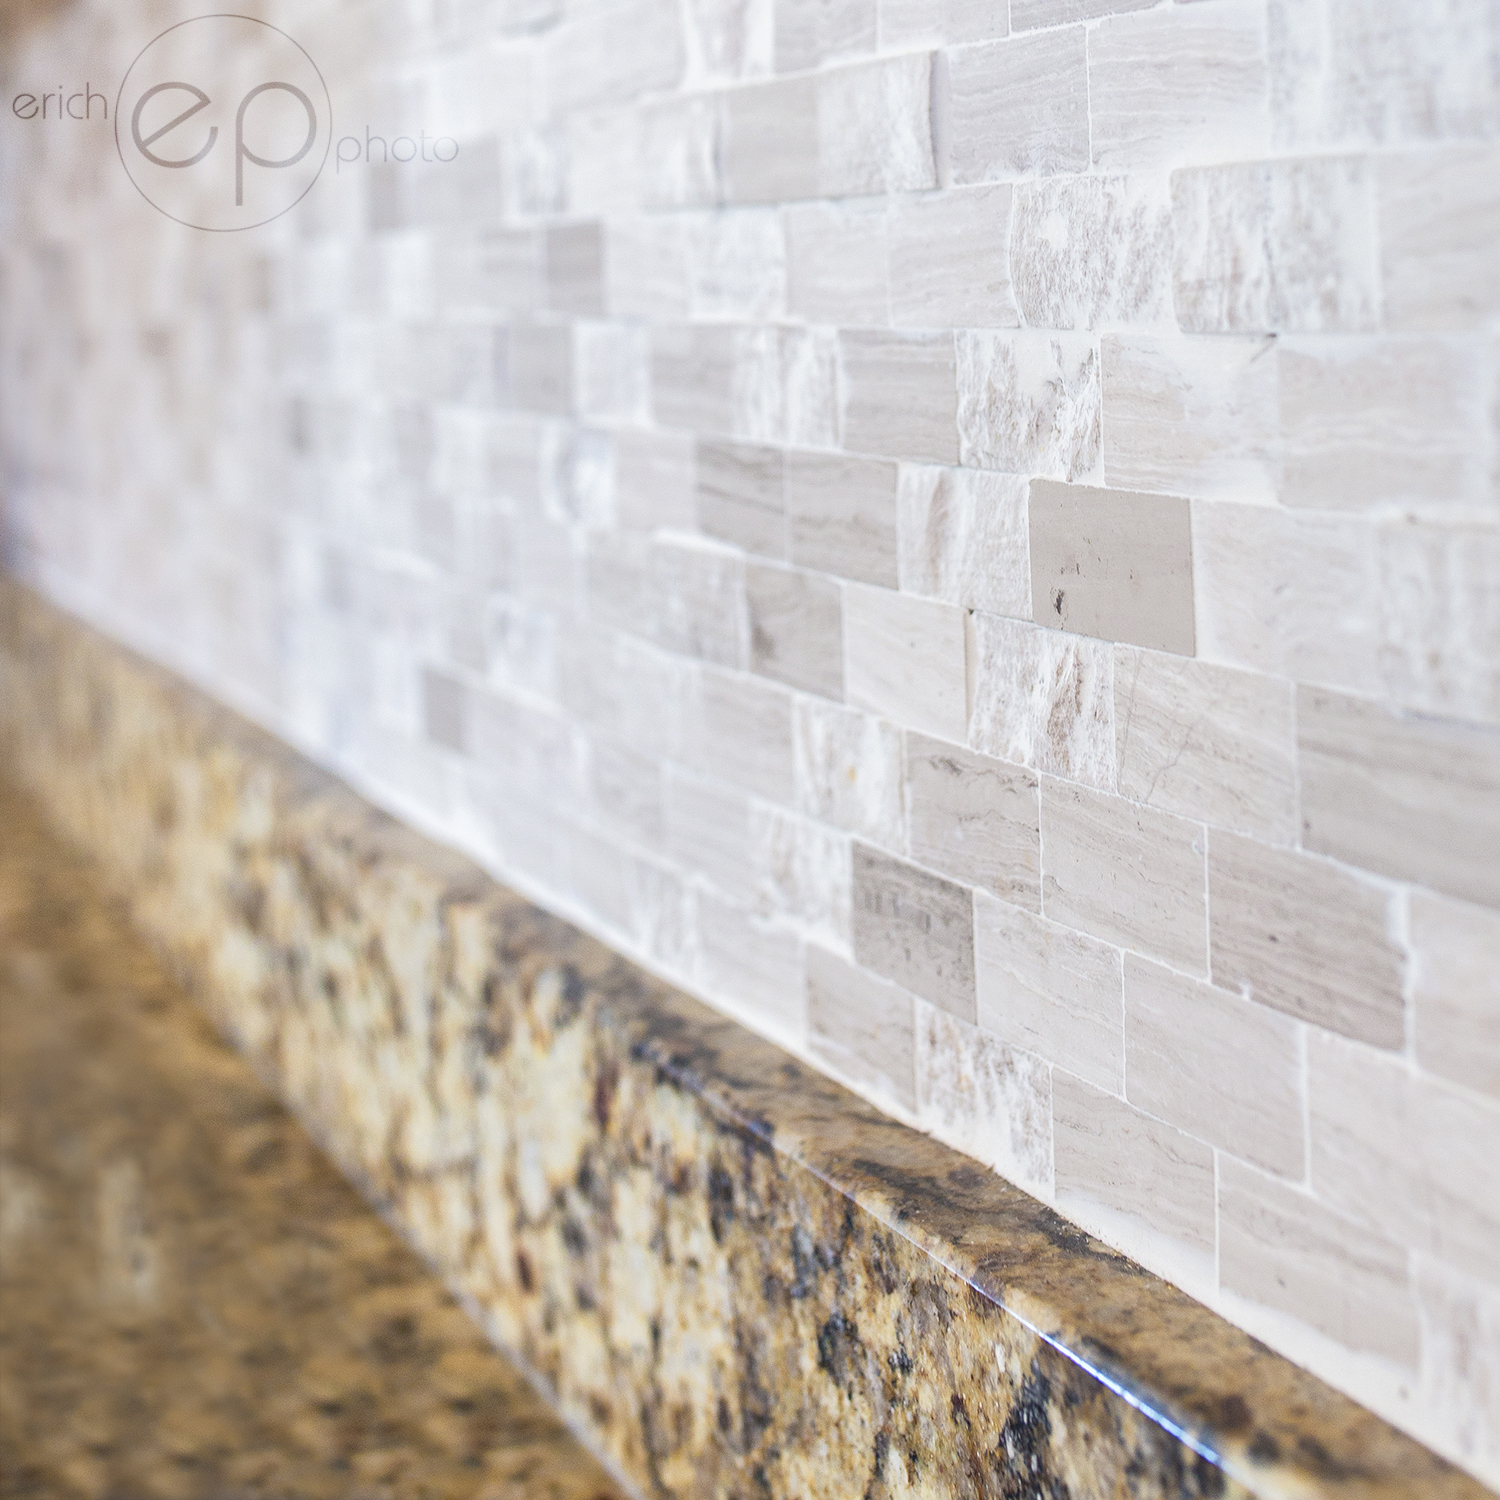 Backsplash blog wm.jpg